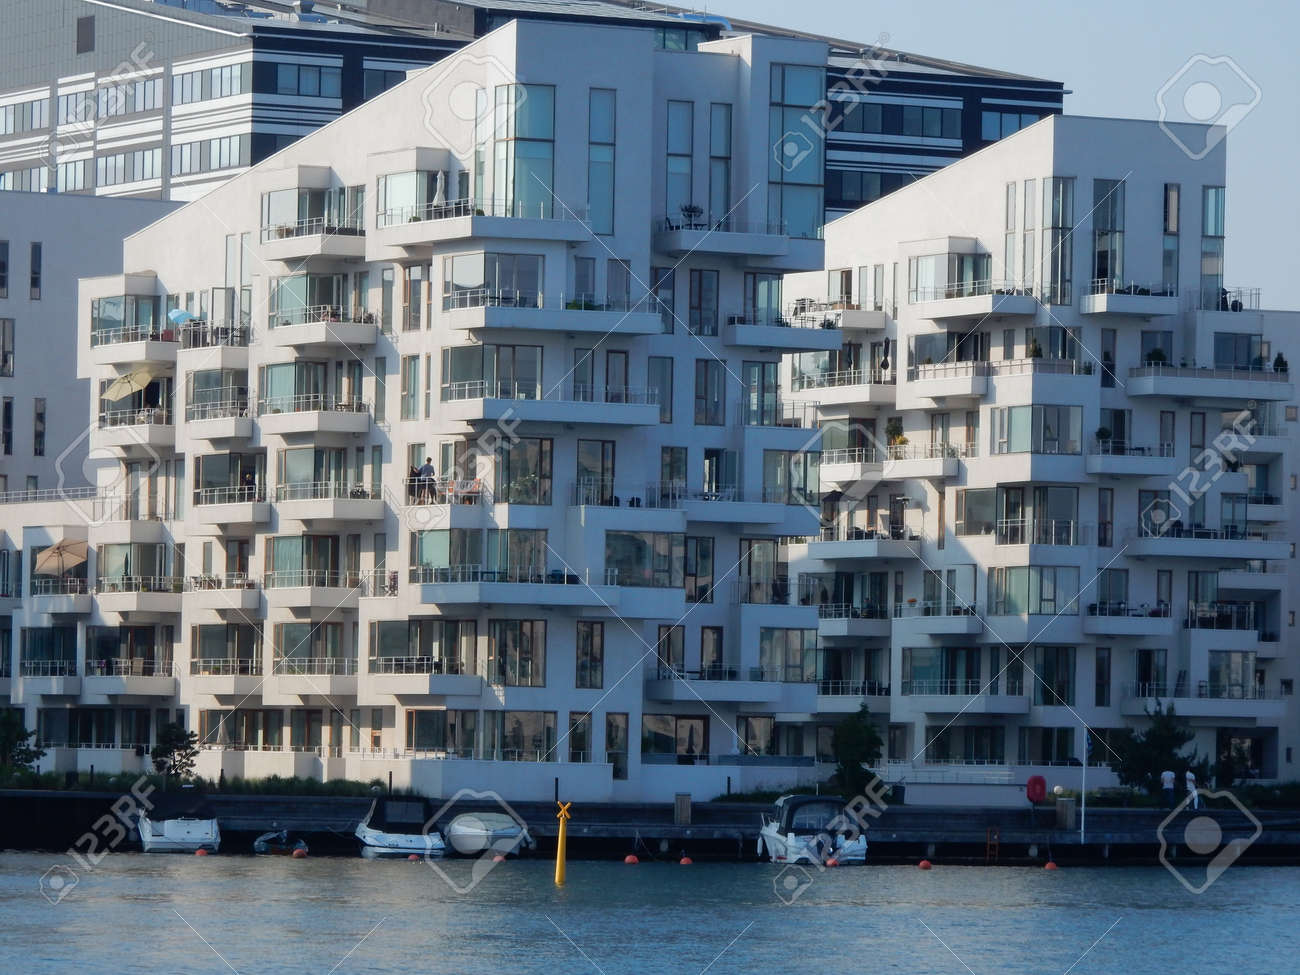 Residential Buildings Near Fisketorvet South Harbor Copenhagen